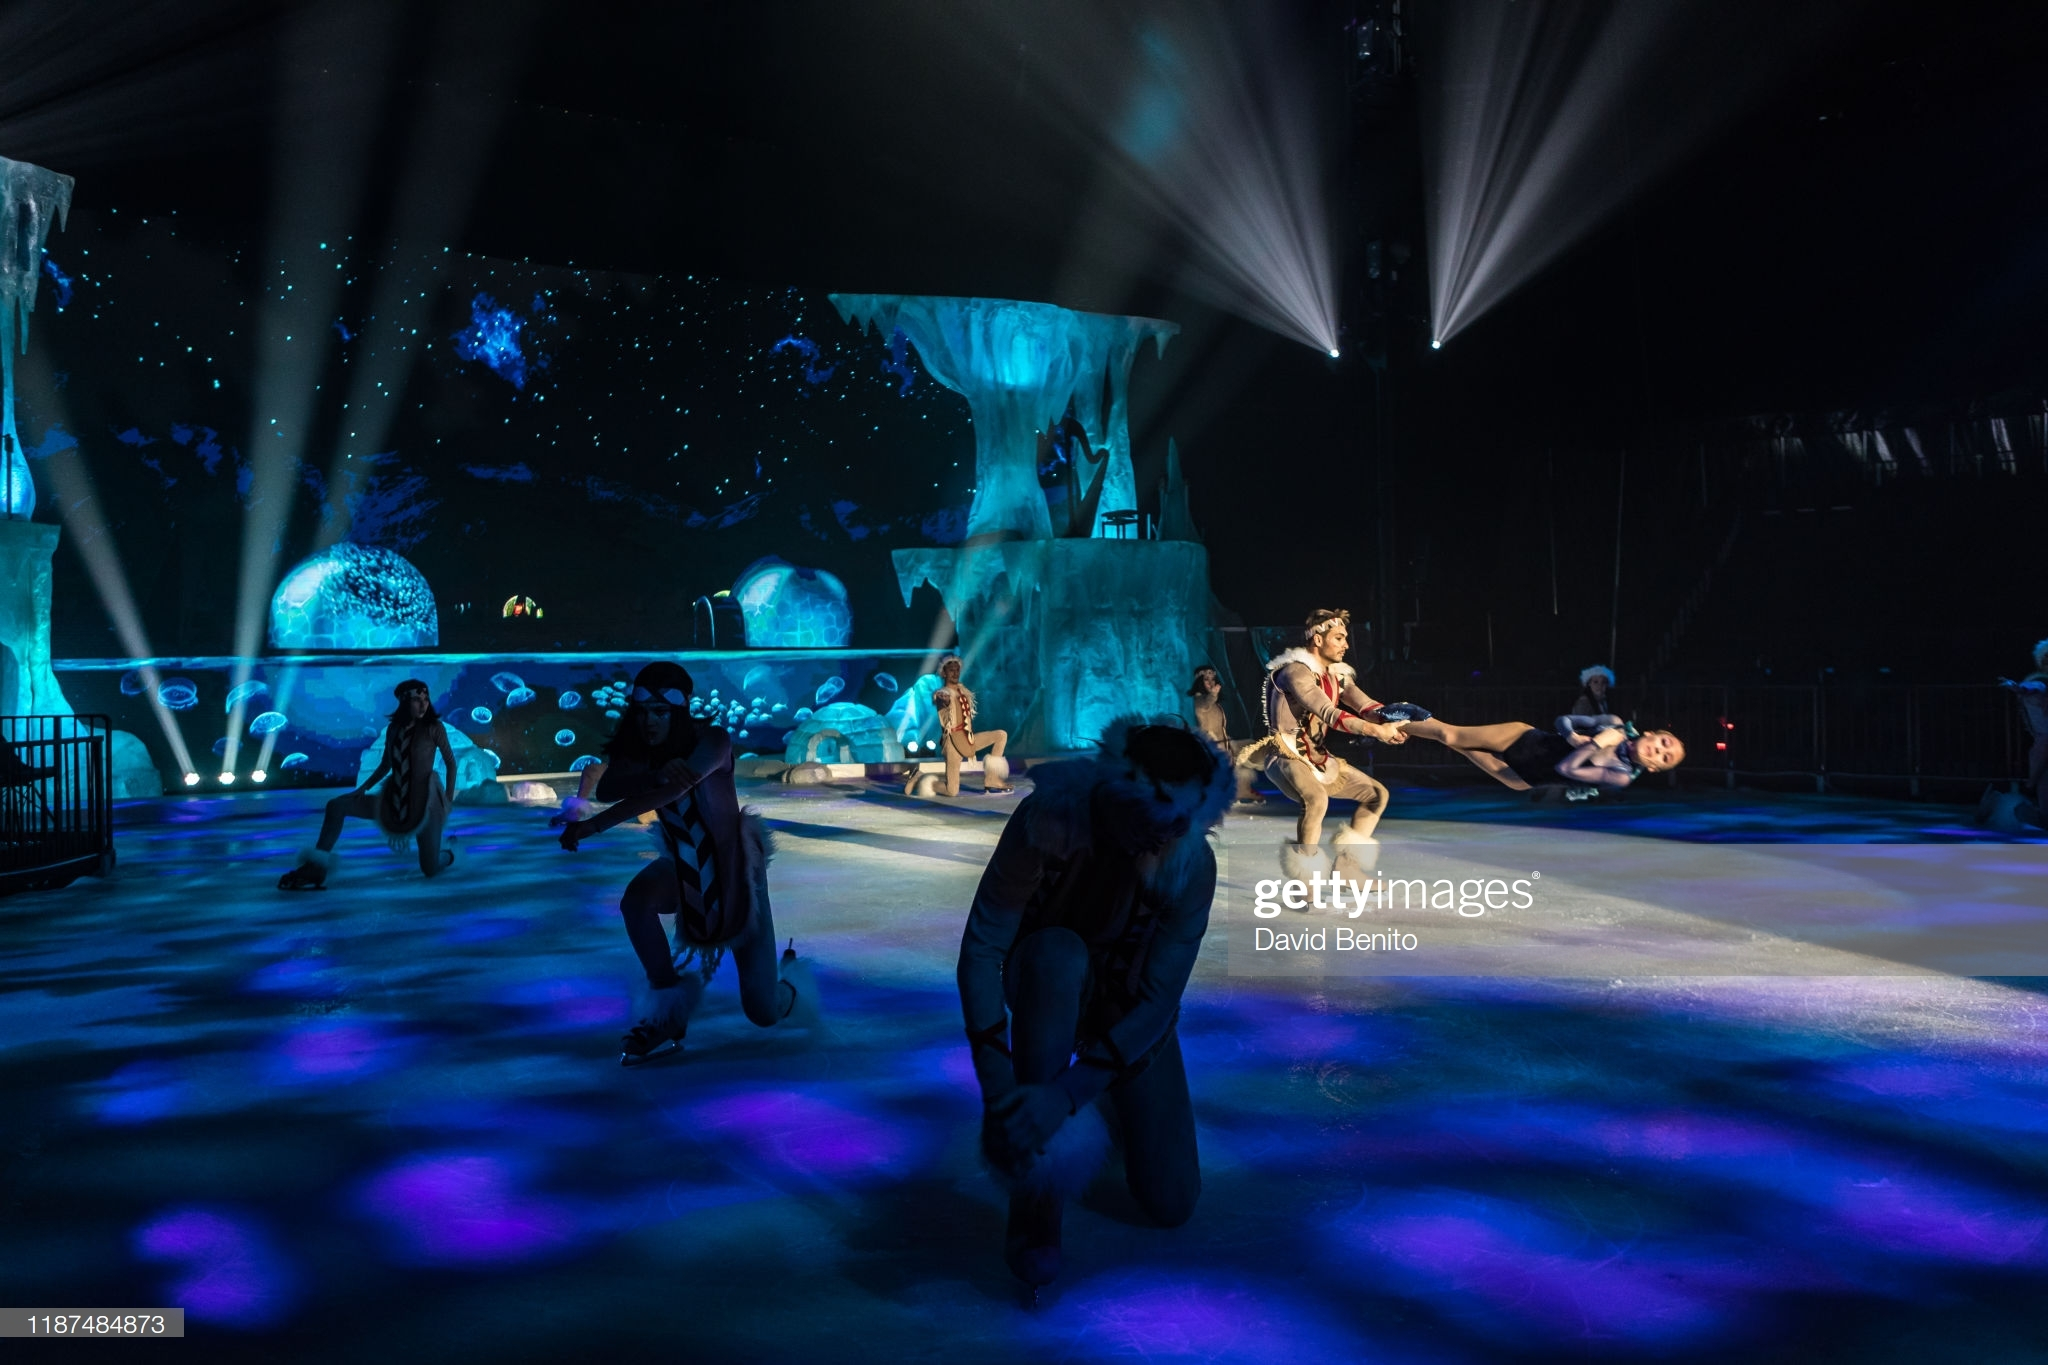 gettyimages-1187484873-2048x2048